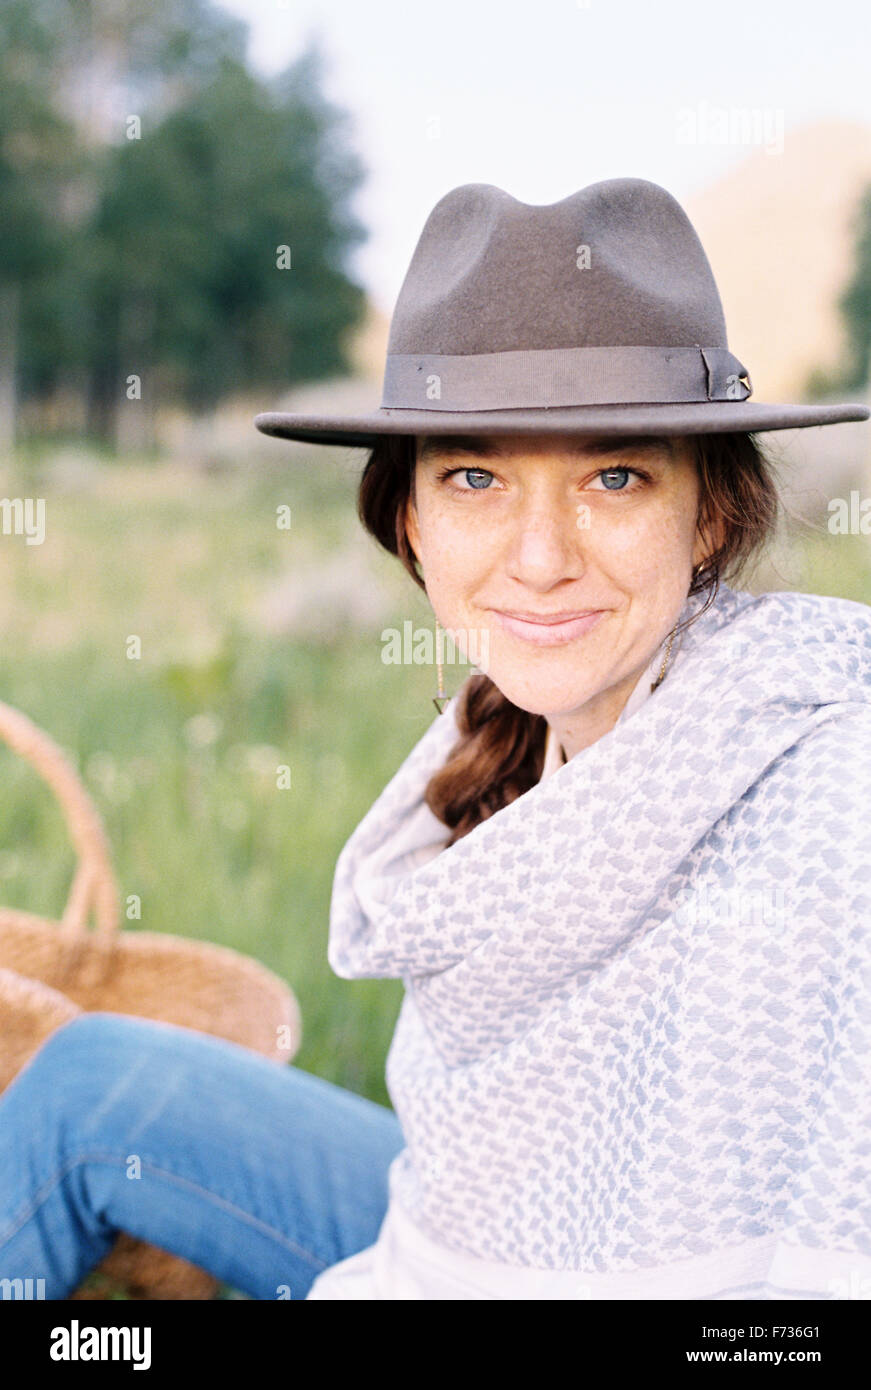 A woman in a hat and woollen shawl sitting in a meadow. - Stock Image